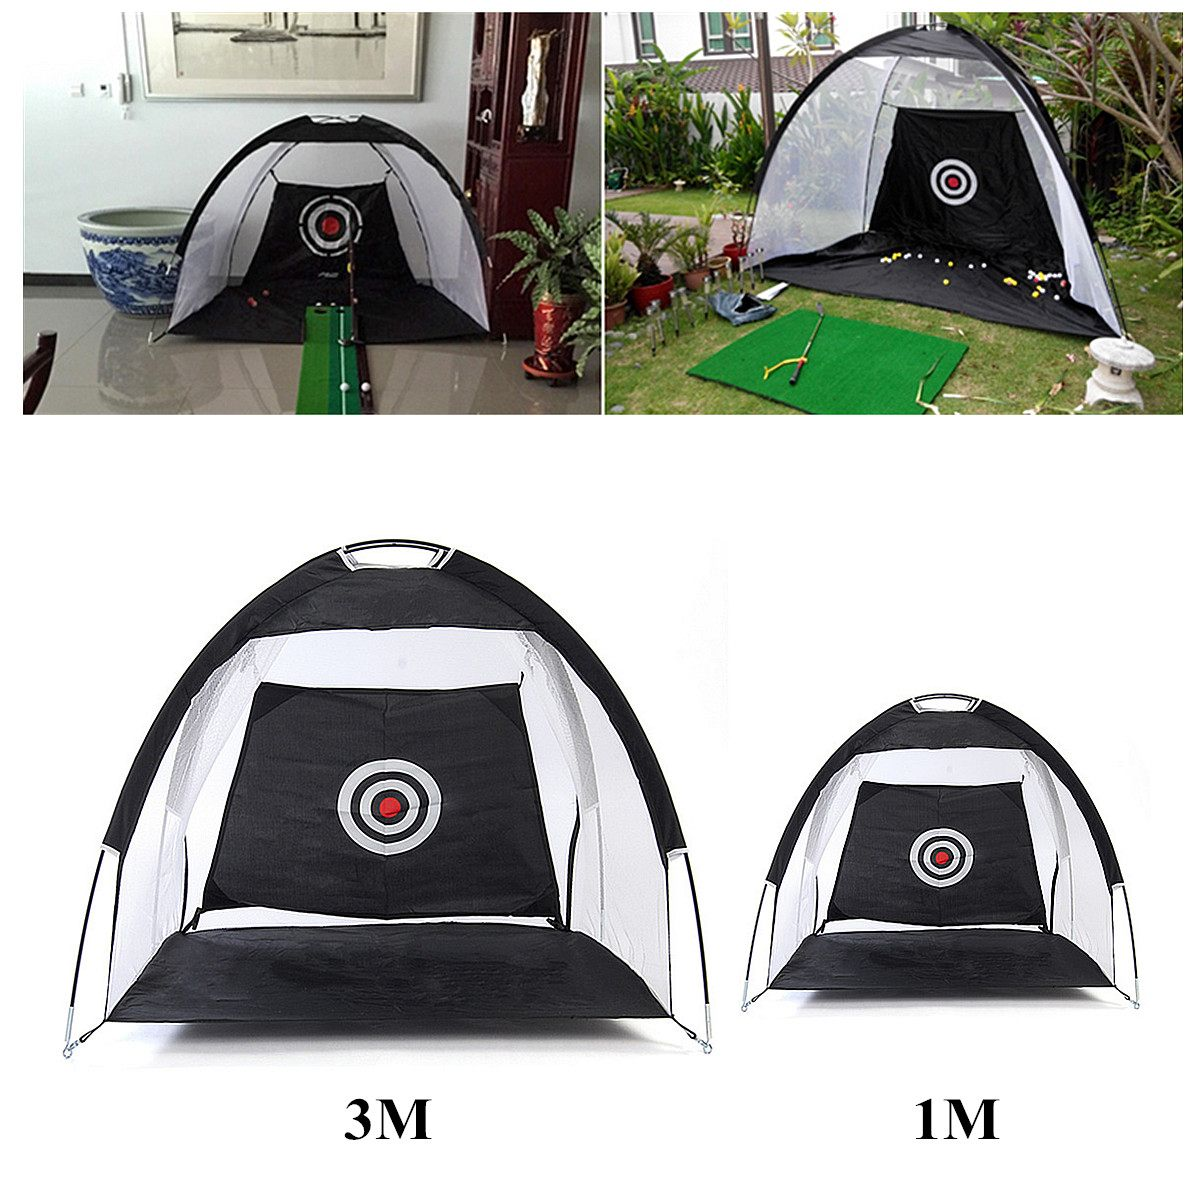 3m/1m Black Foldable Golf Hitting Cage Practice Net Trainer 210D Encryption Oxford Cloth+Polyester Durable sturdy construction3m/1m Black Foldable Golf Hitting Cage Practice Net Trainer 210D Encryption Oxford Cloth+Polyester Durable sturdy construction